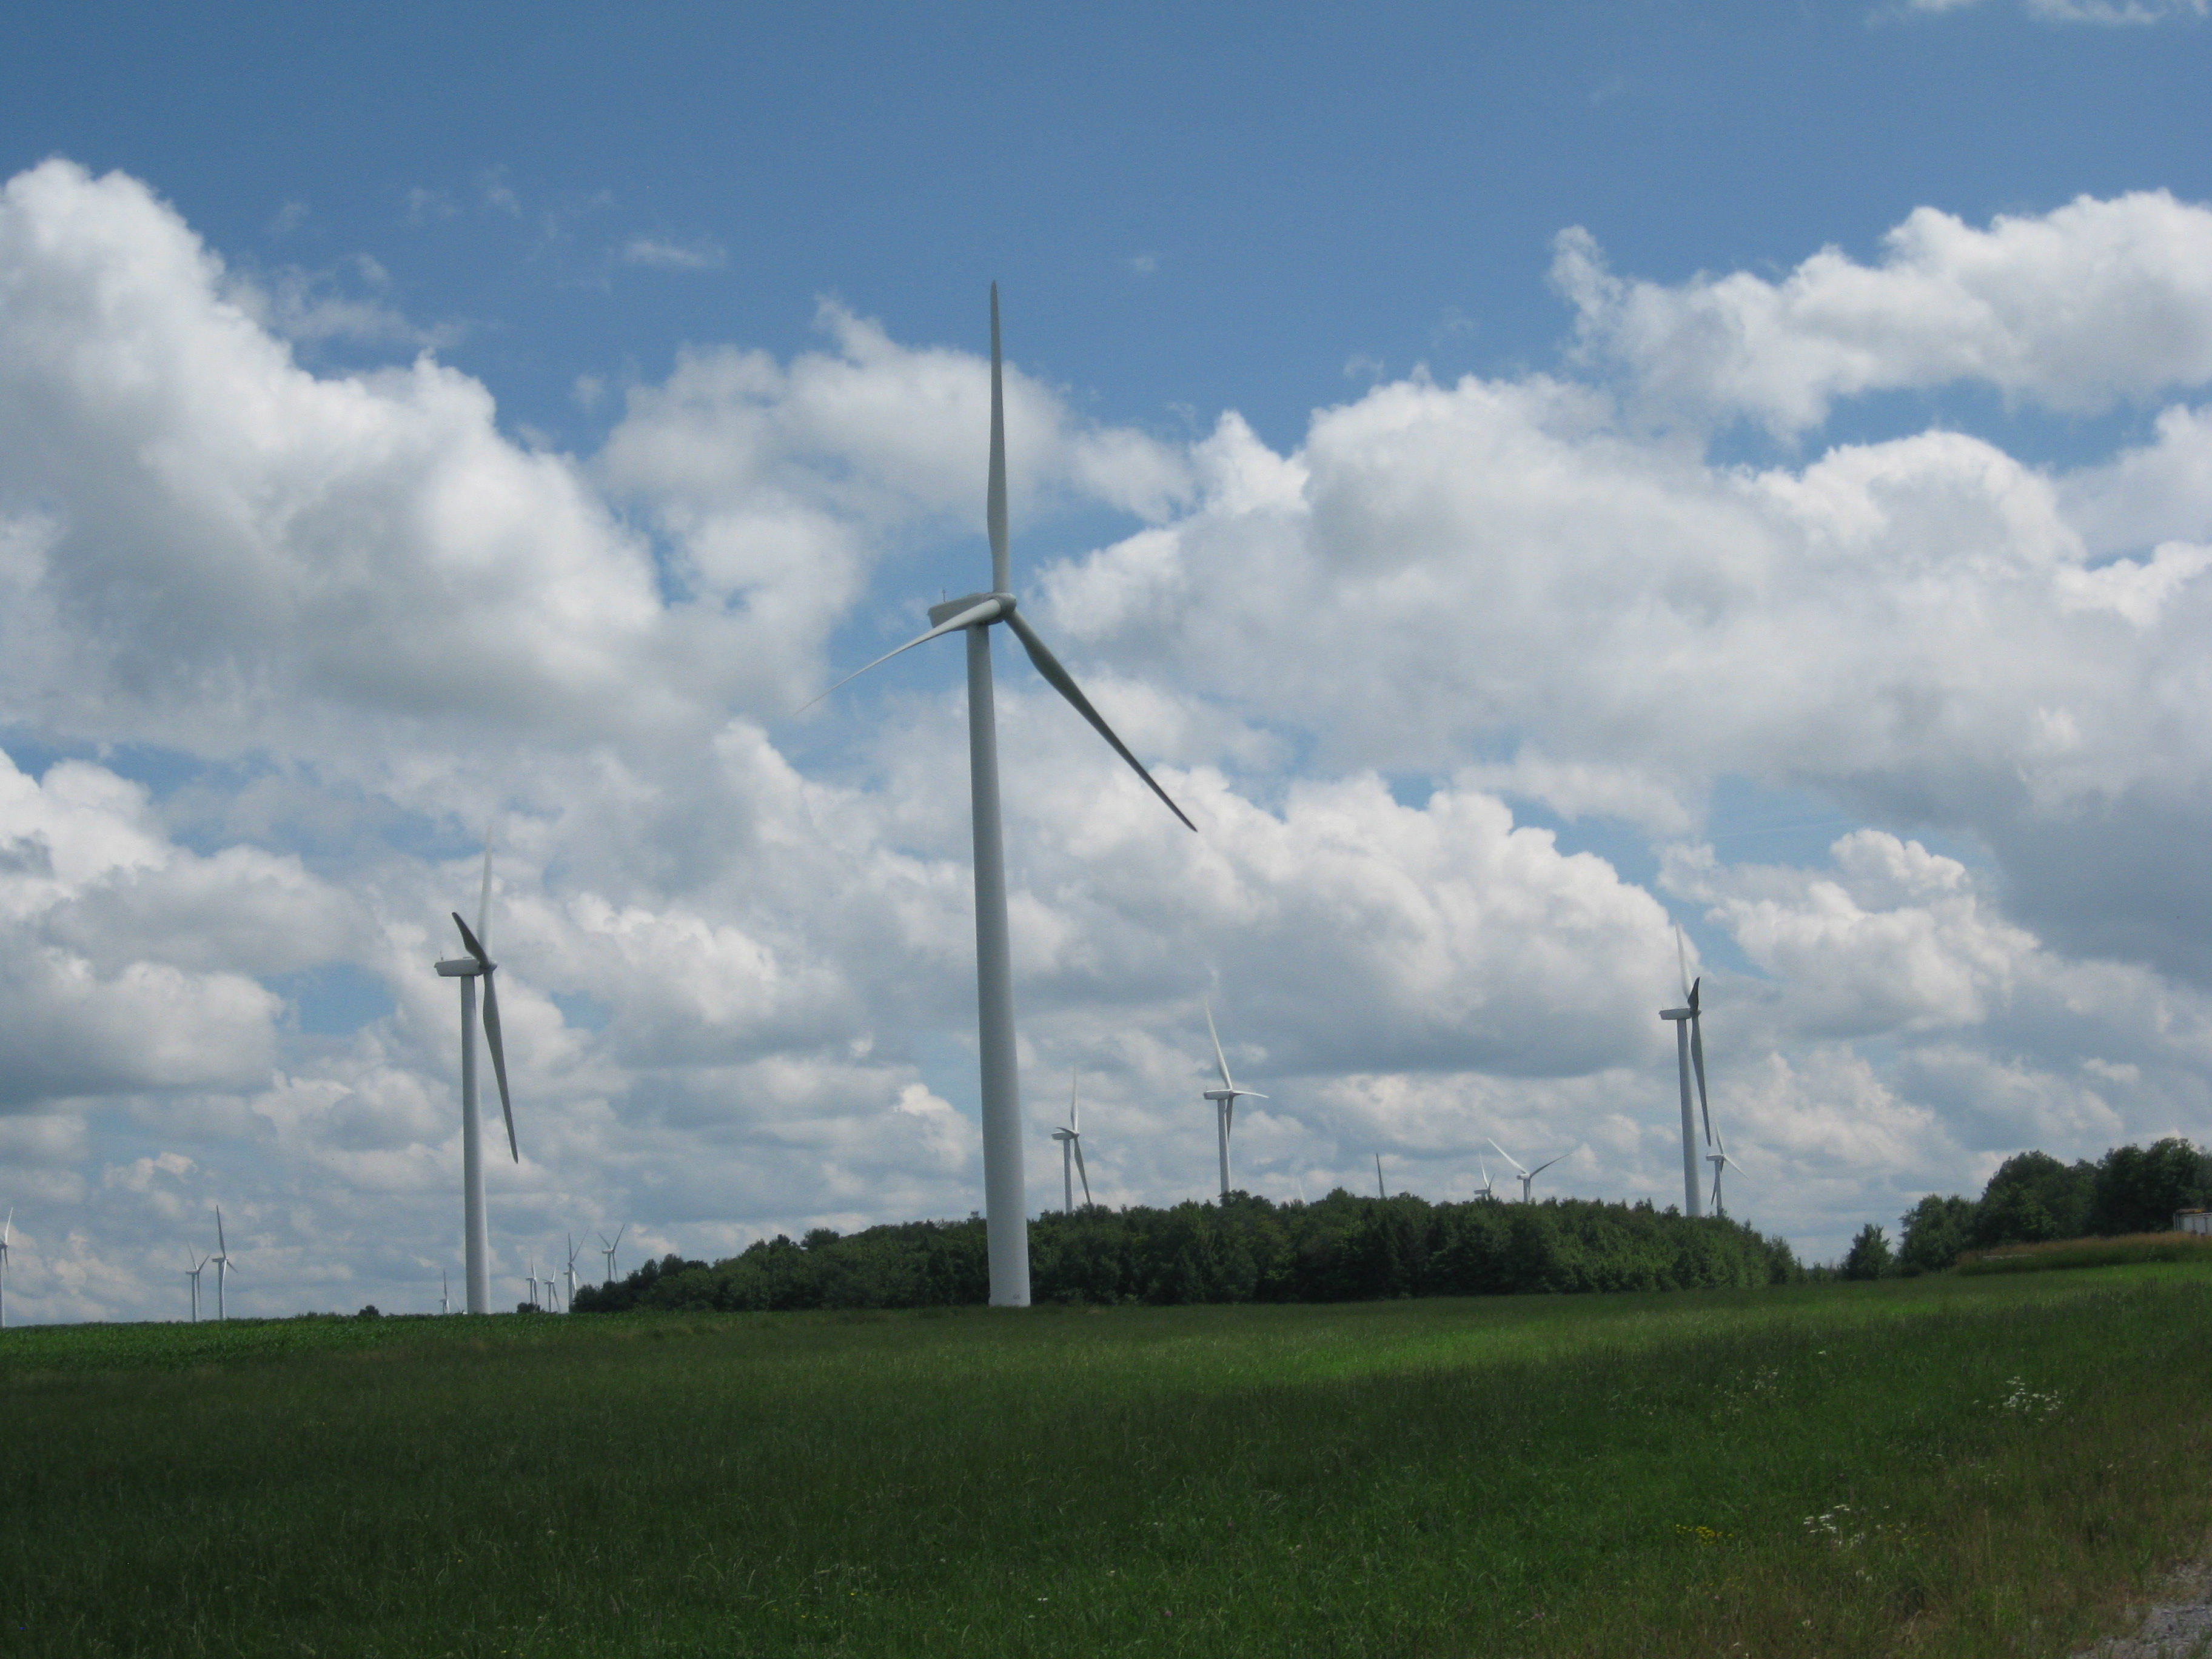 Wind power plants. Home wind power plants. Wind power